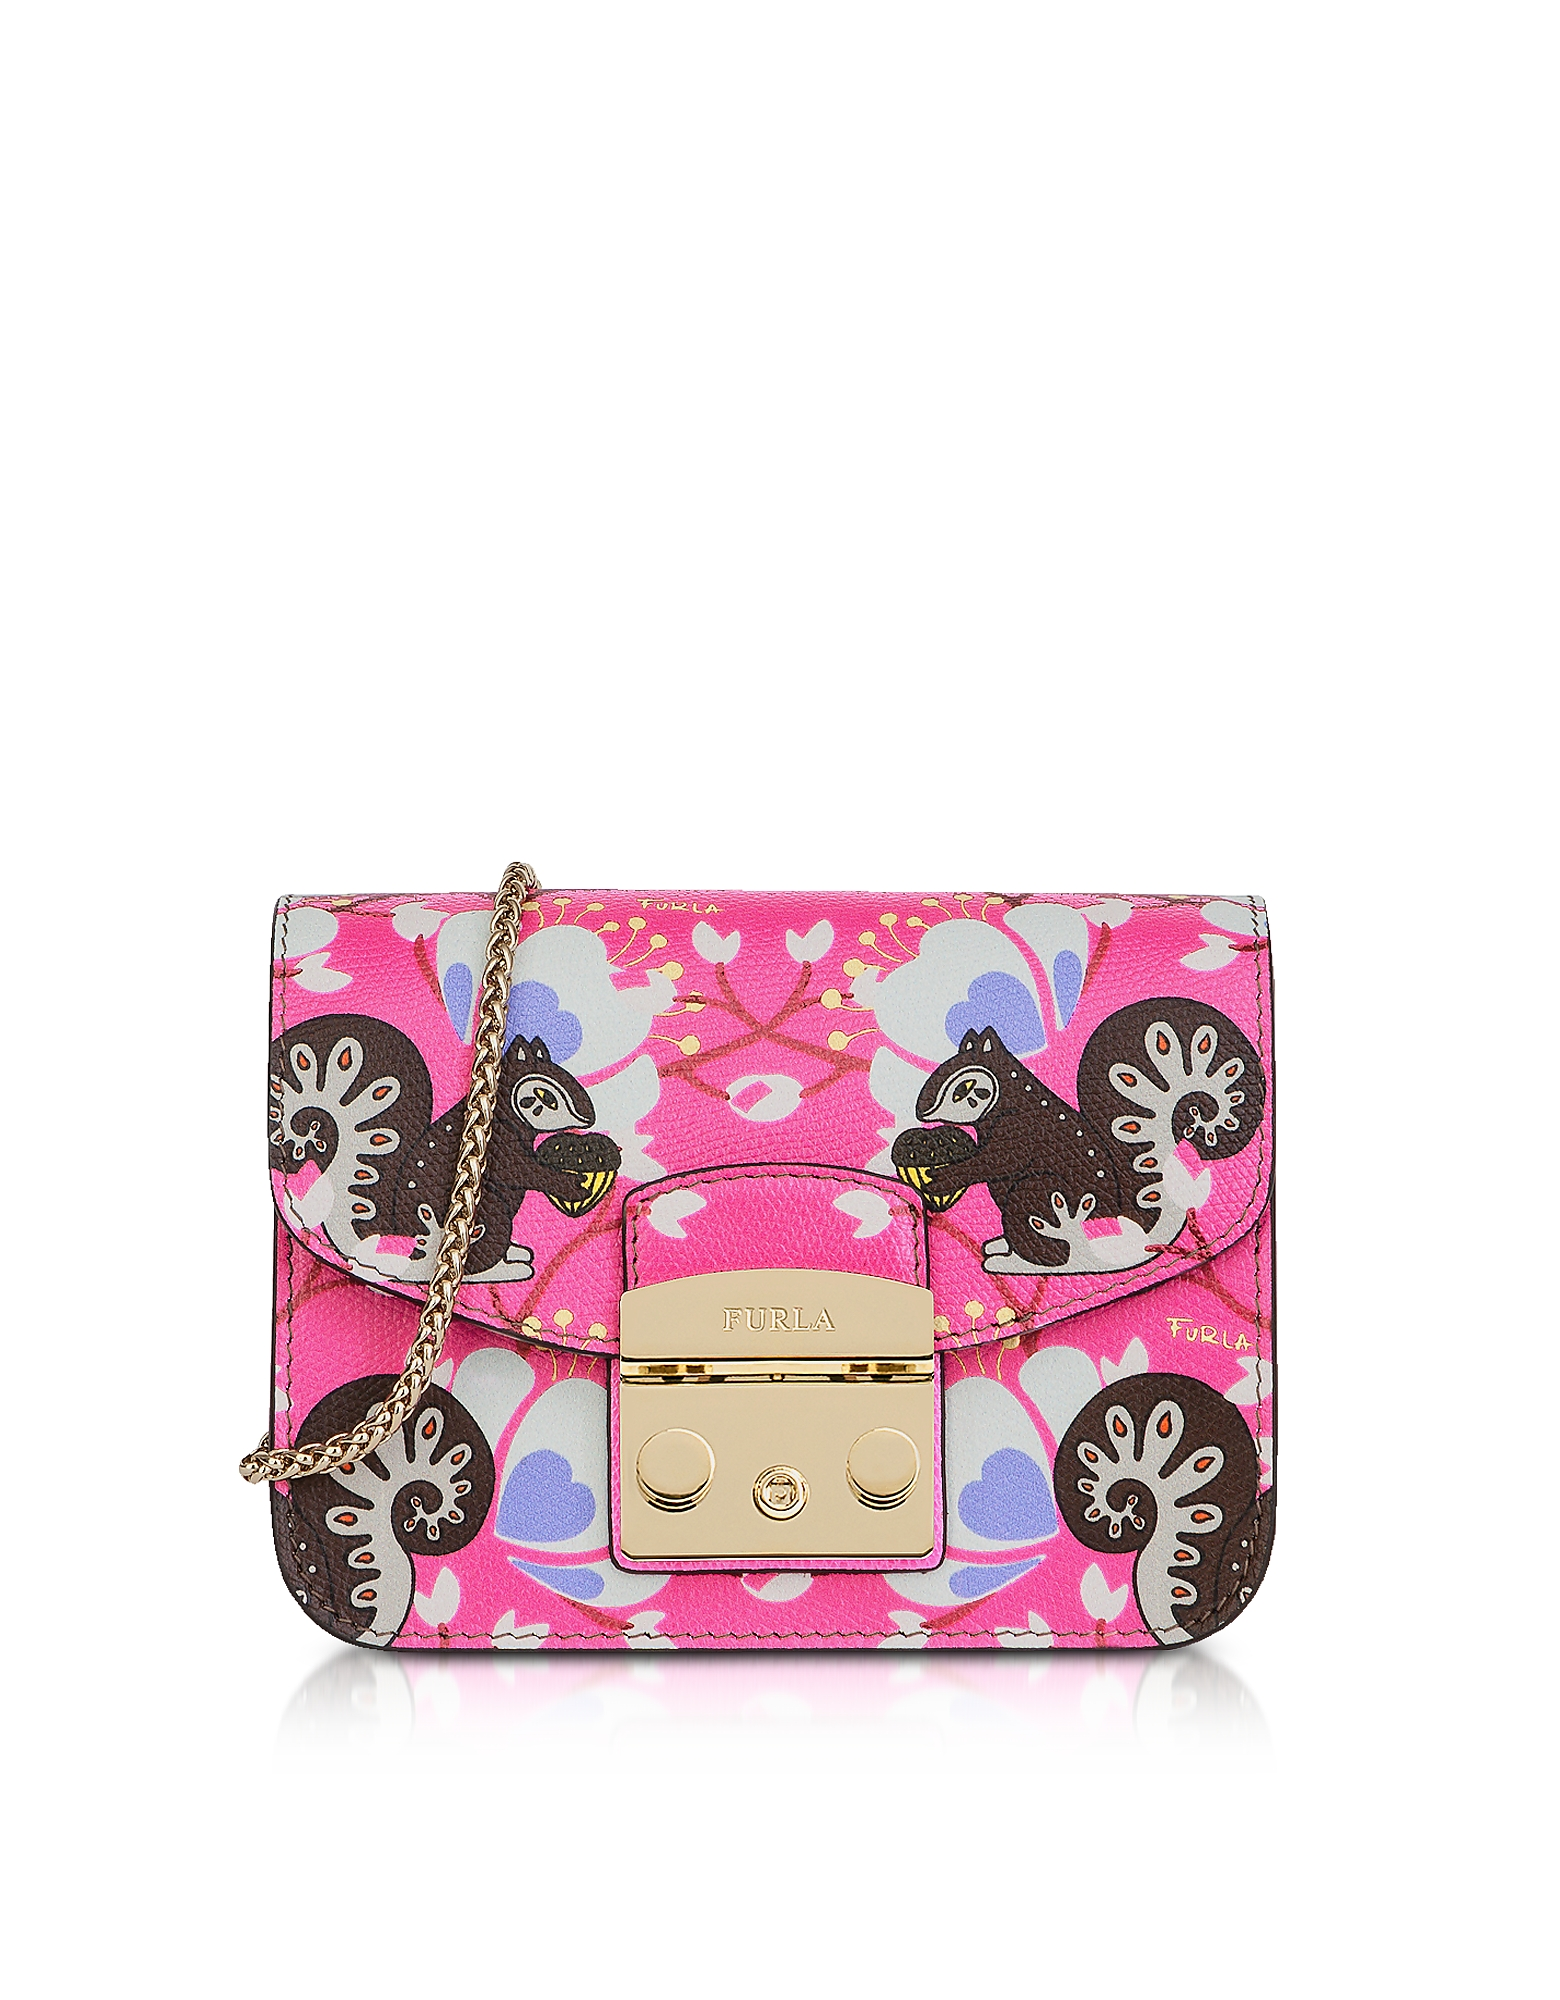 Furla Handbags, Toni Fucsia Leather Metropolis Mini Crossbody Bag